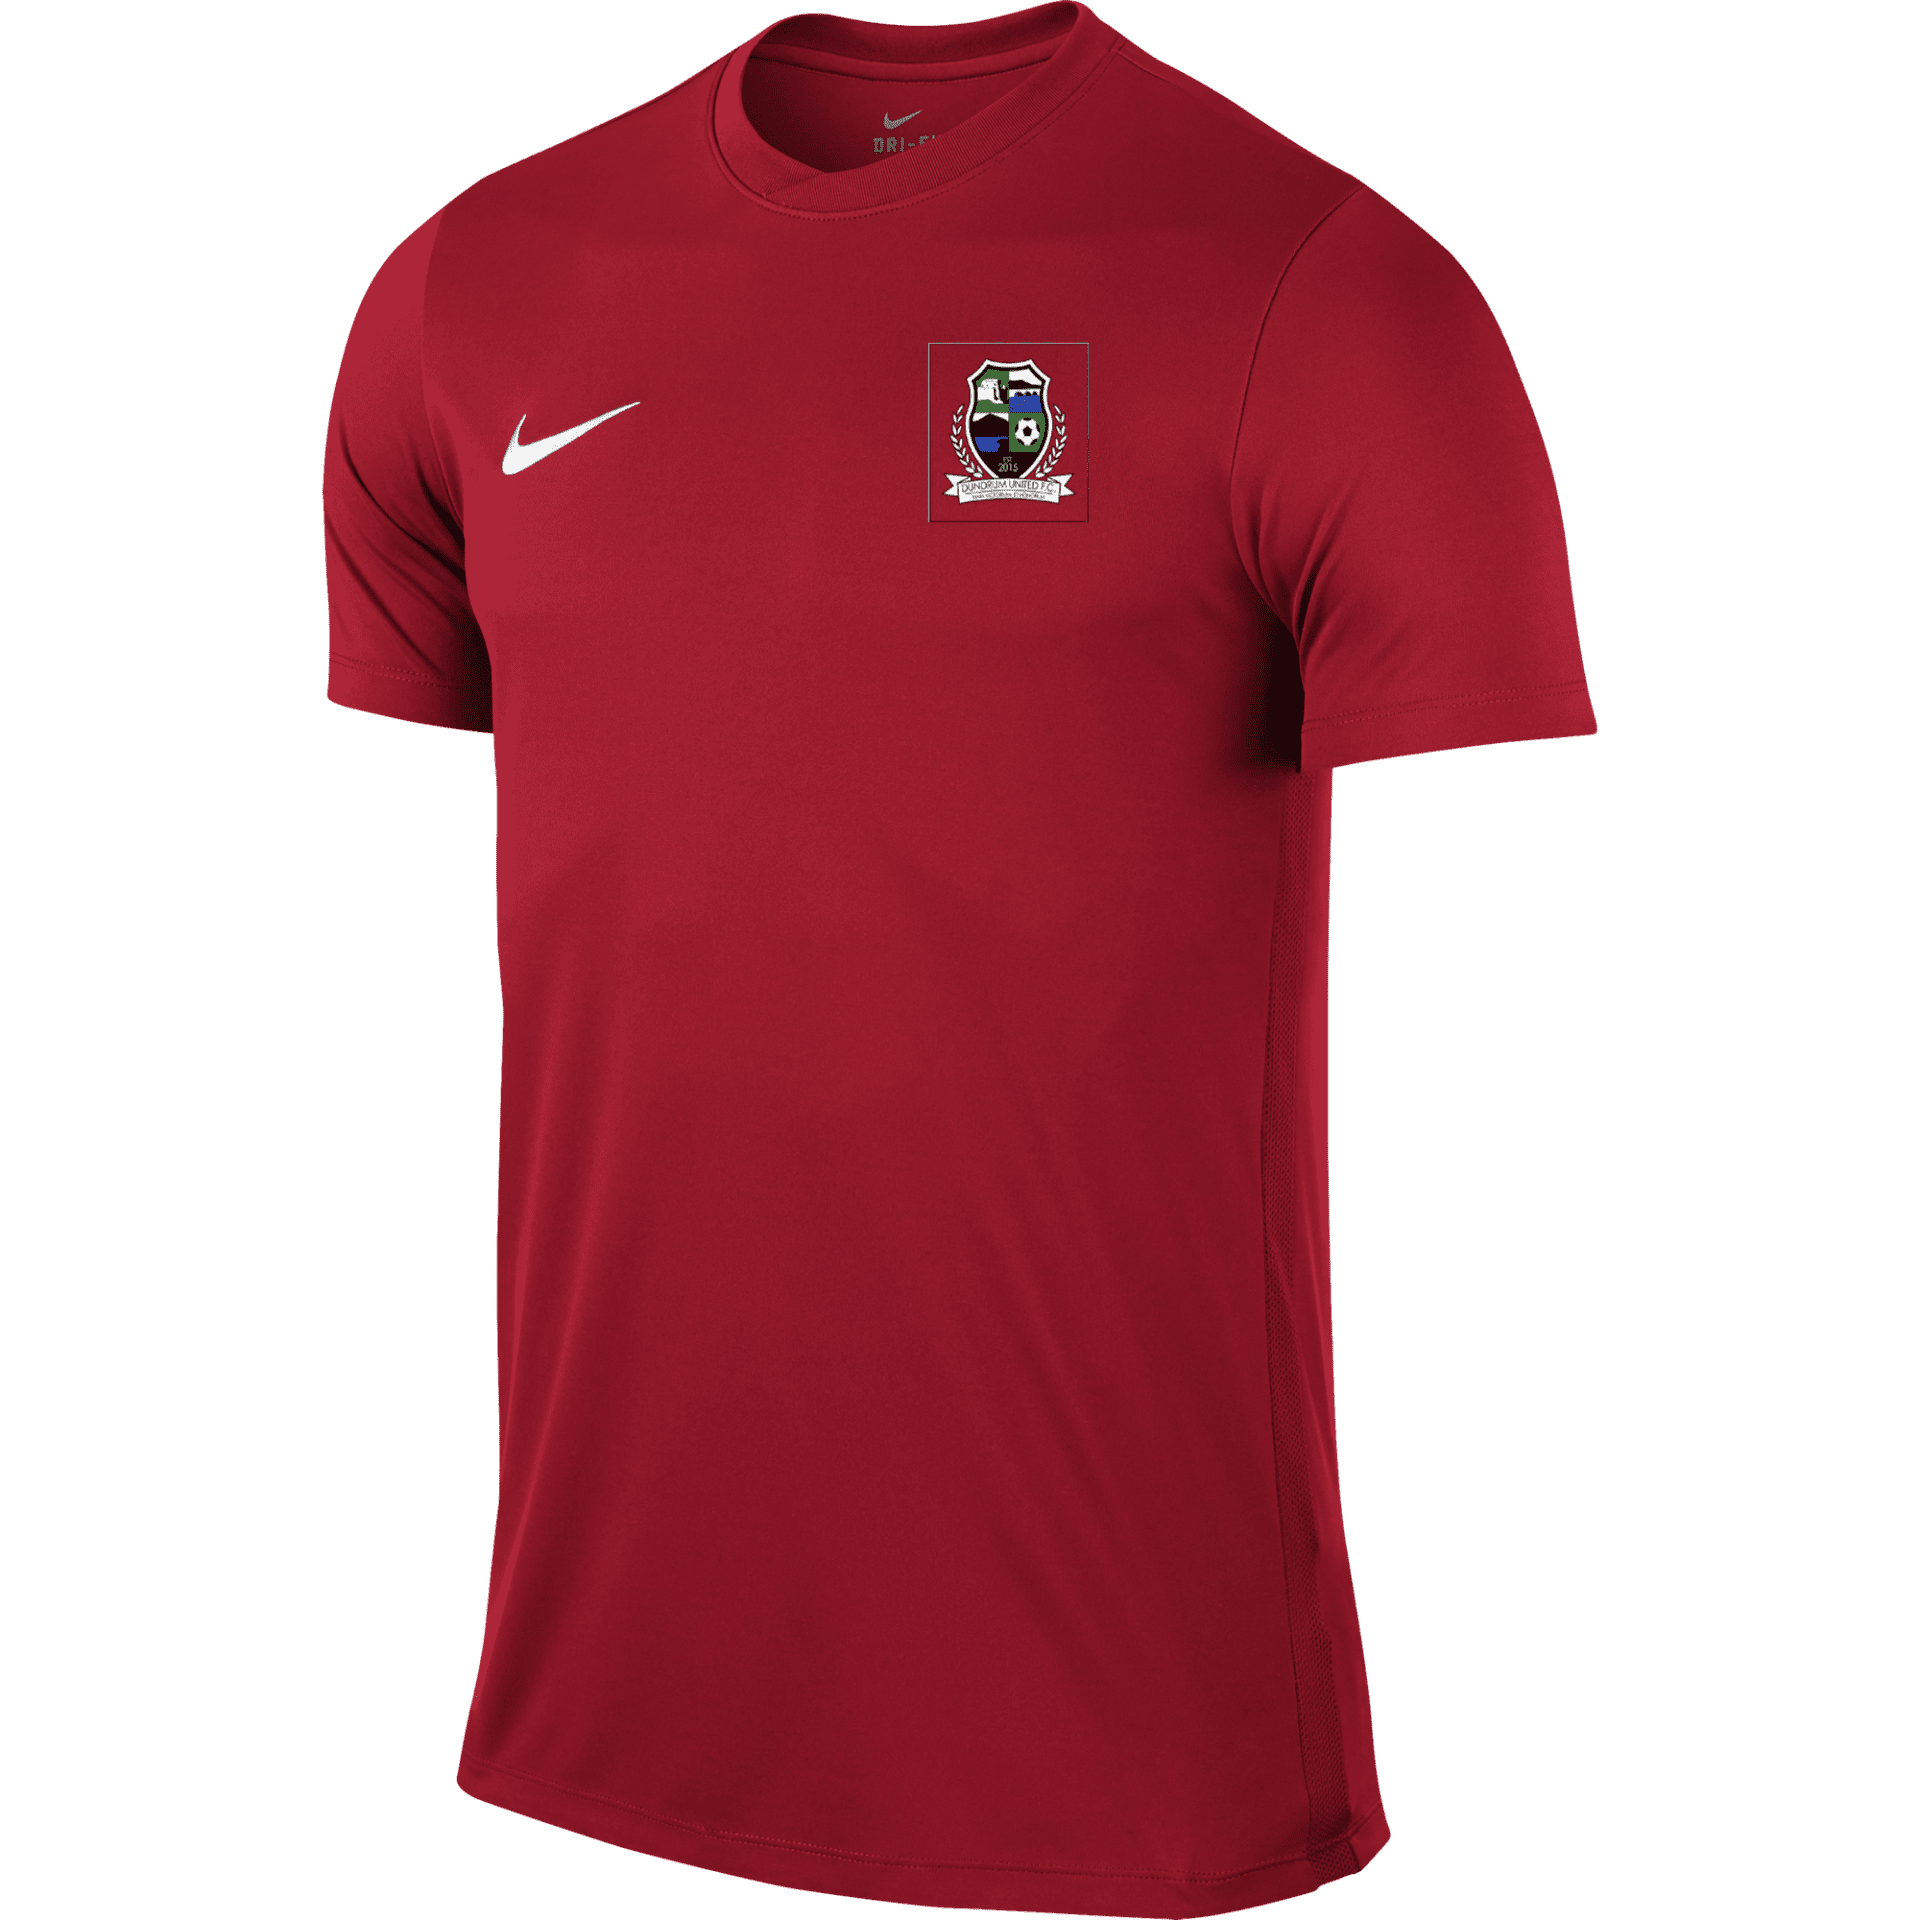 dundrum fc park jersey red  34084 p